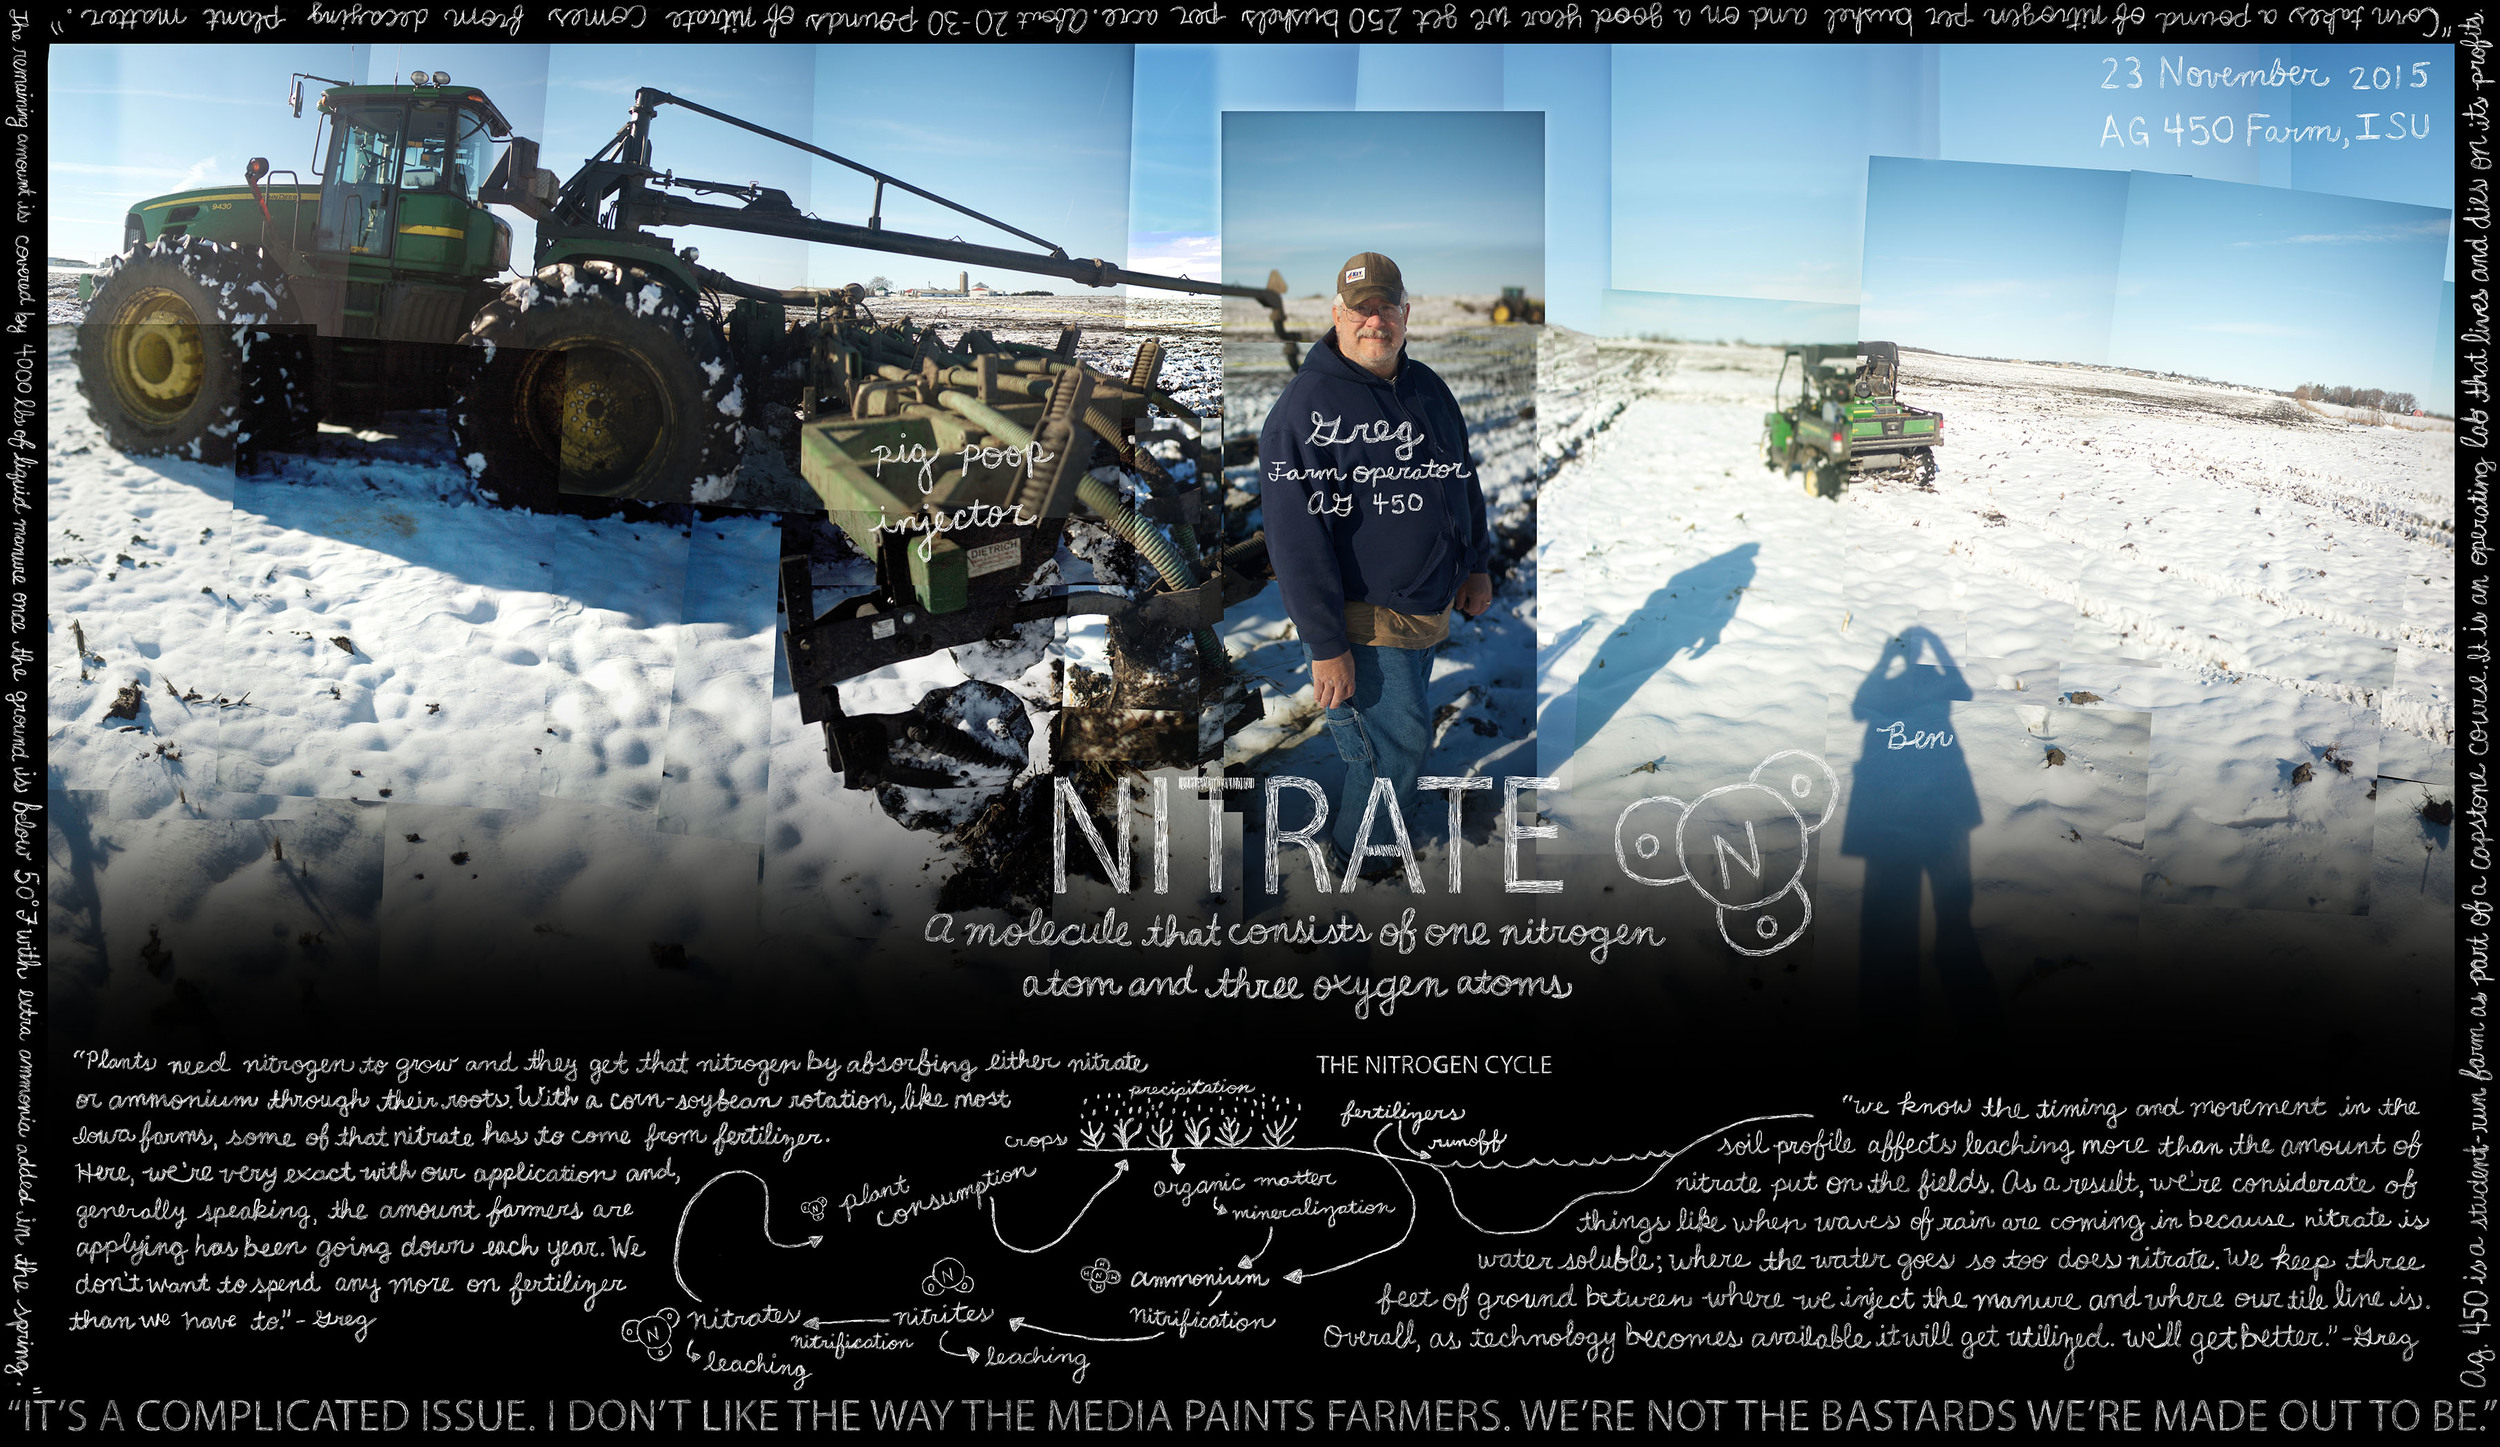 PL_AMES_Nitrate_small - Copy-RESIZED.jpg